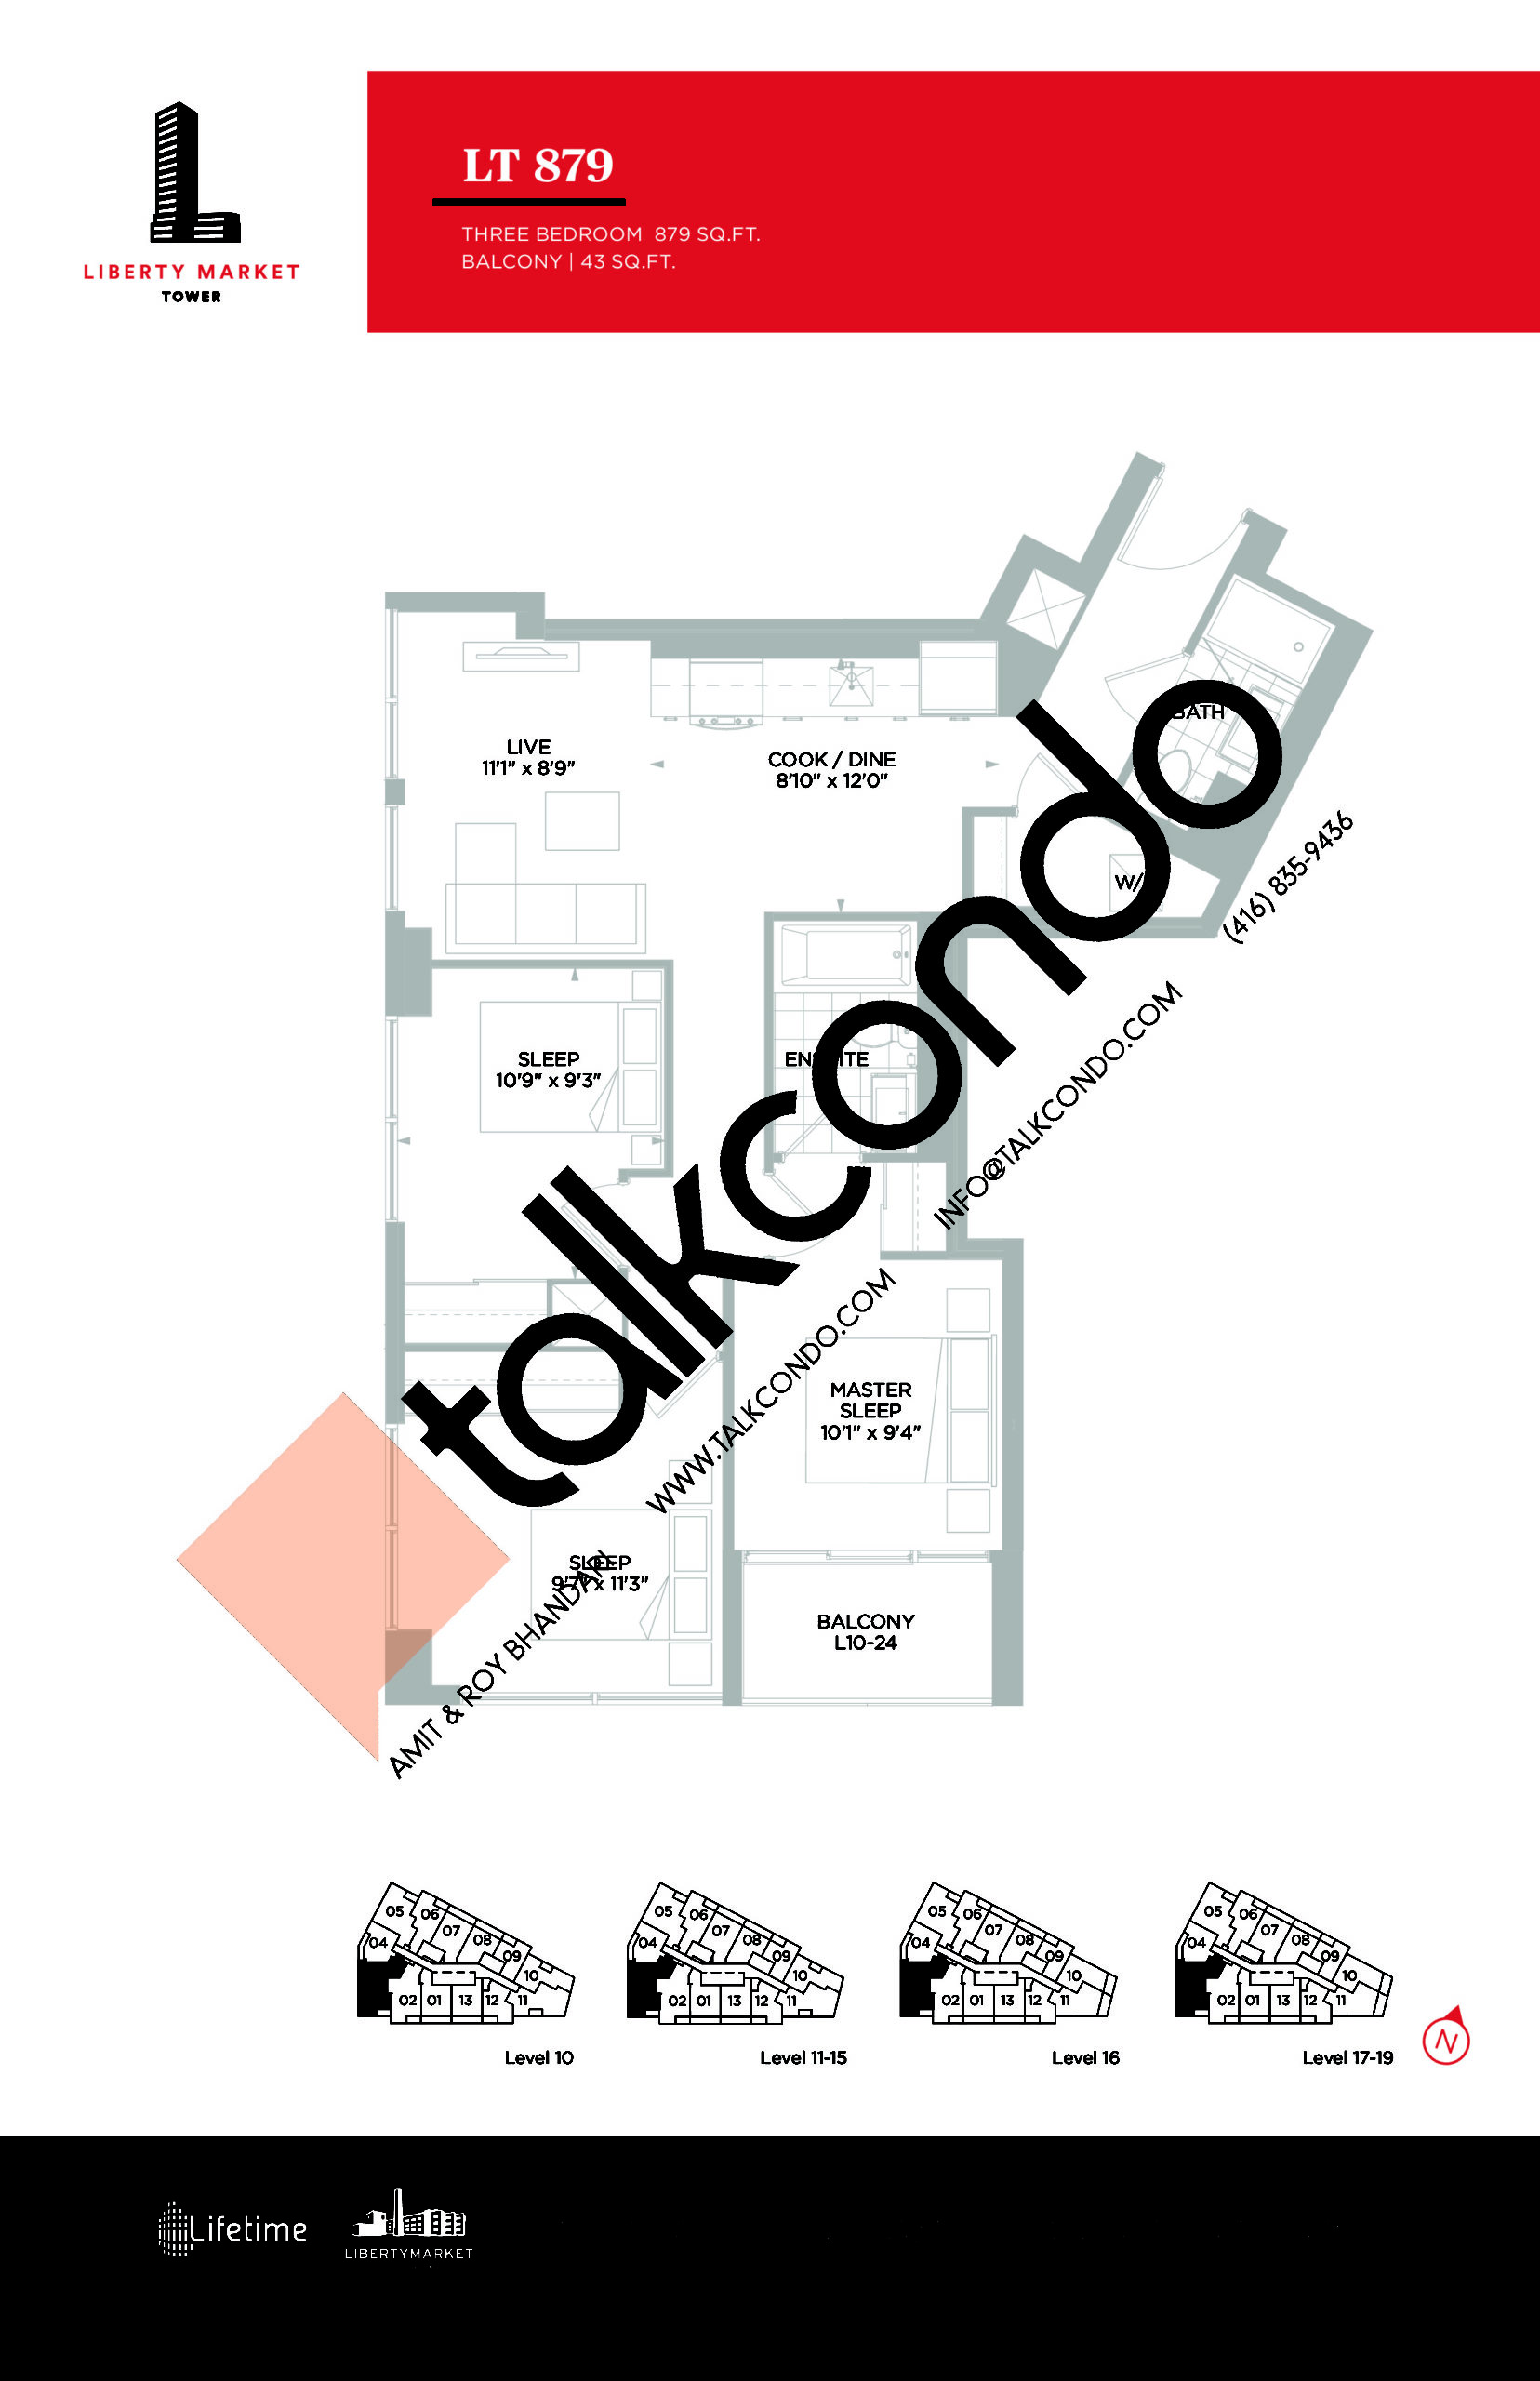 LT 879 - Tower Collection Floor Plan at Liberty Market Tower Condos - 879 sq.ft